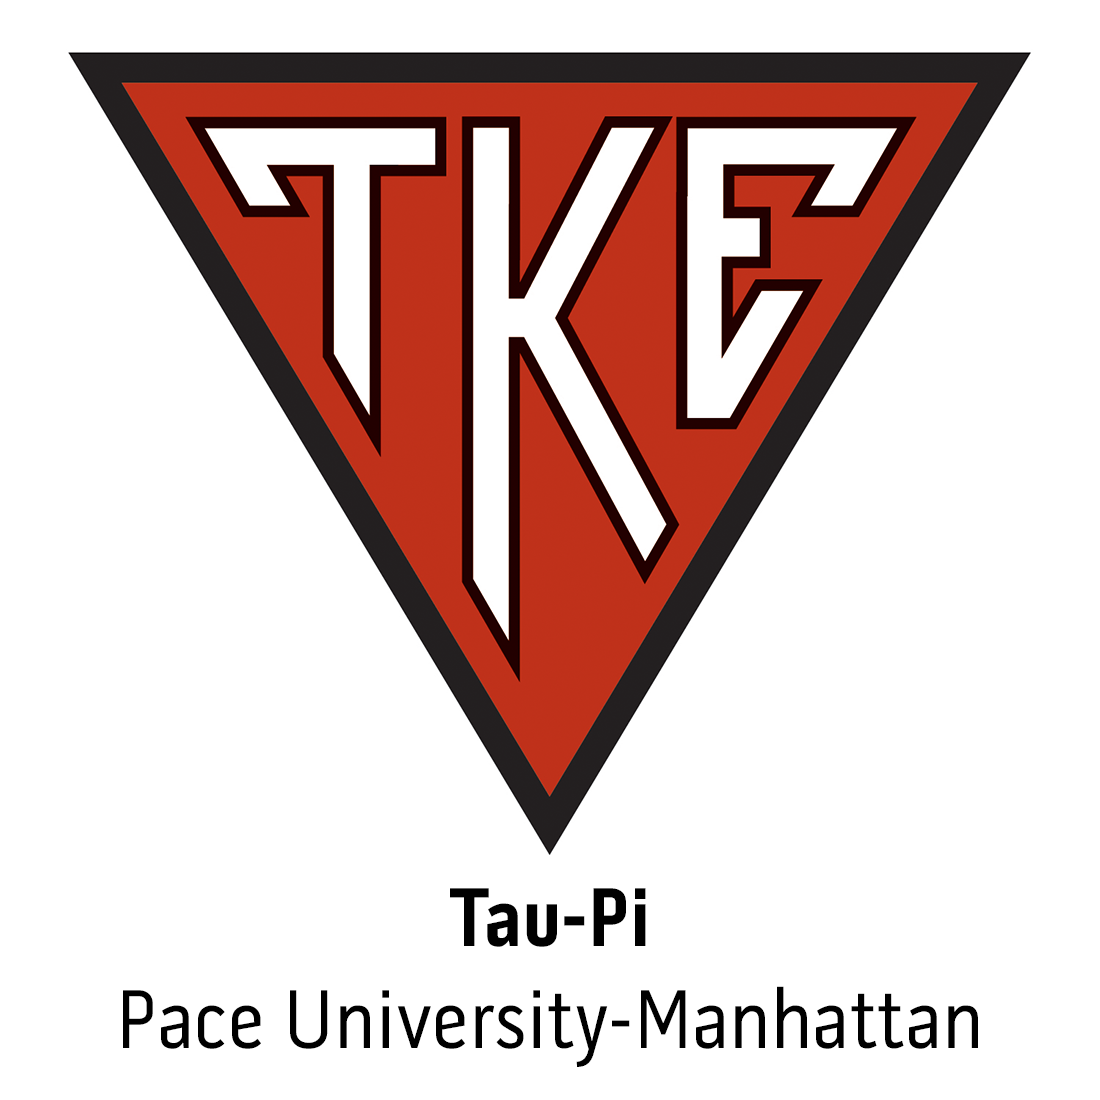 Tau-Pi Chapter at Pace University-Manhattan